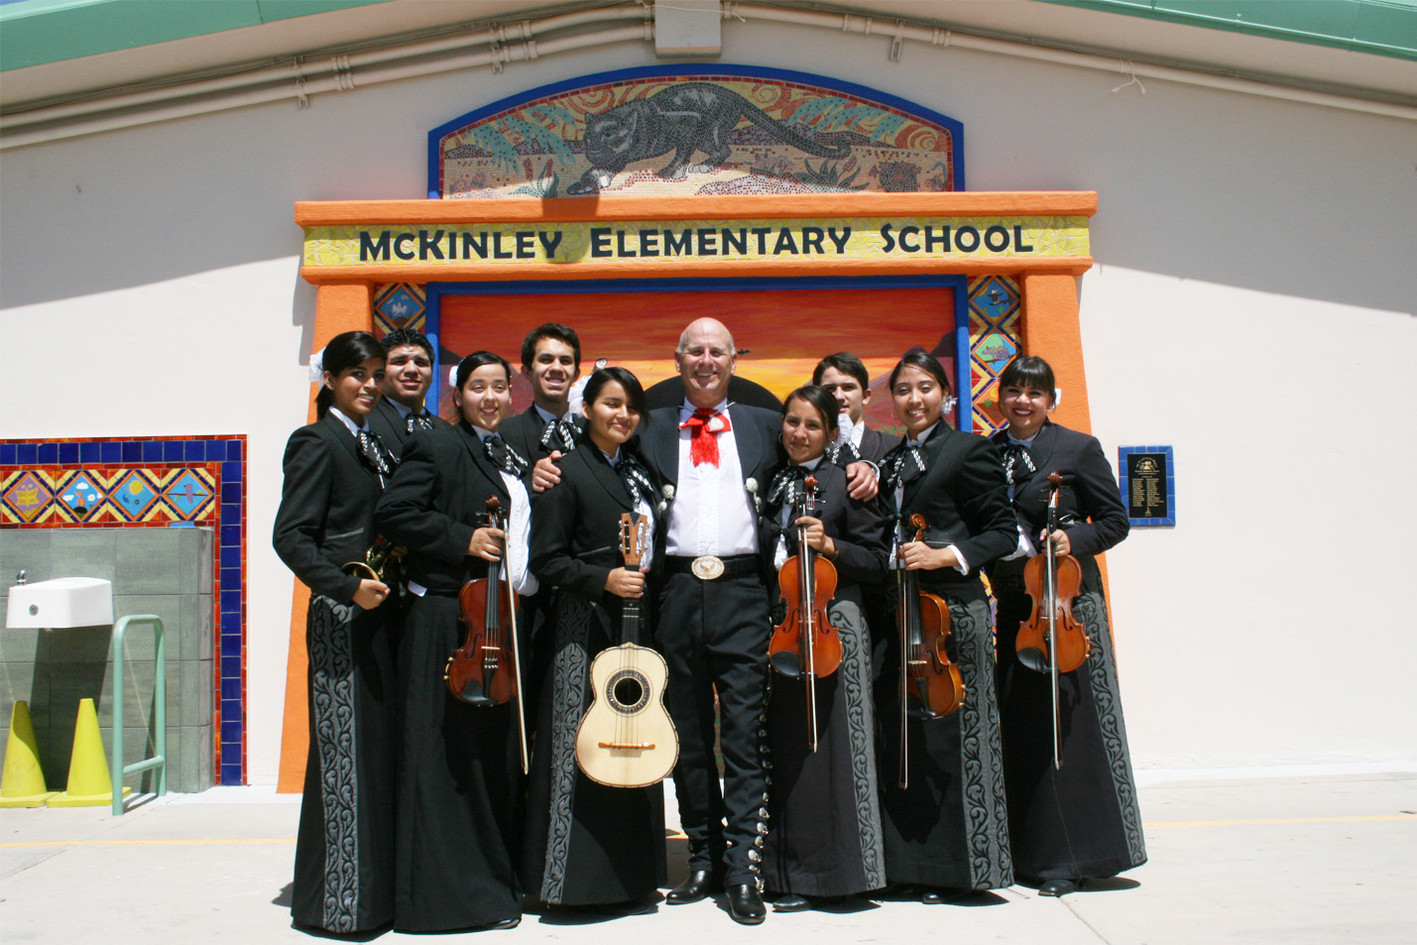 Mariachi students with mosaic panther at McKinley Elementary School